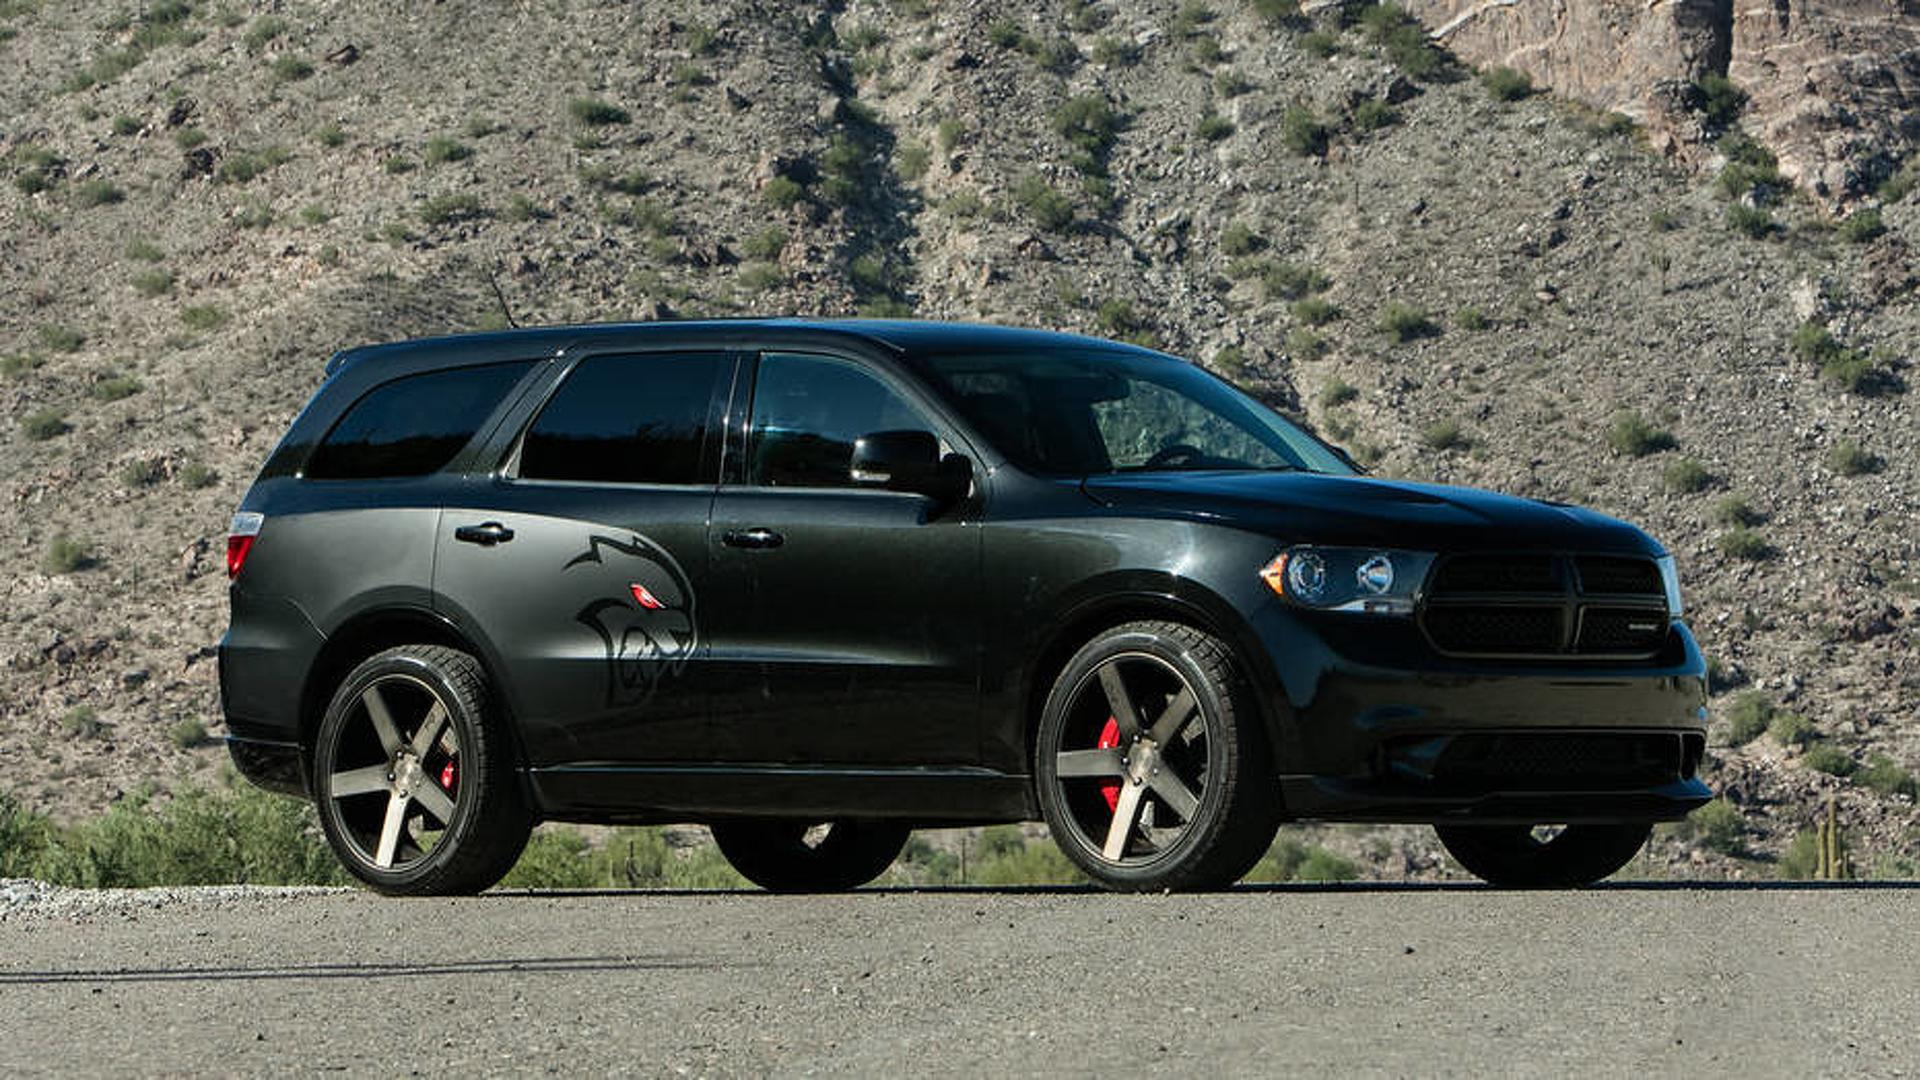 700 Hp Hellcat Powered Dodge Durango Is Real And It S Awesome